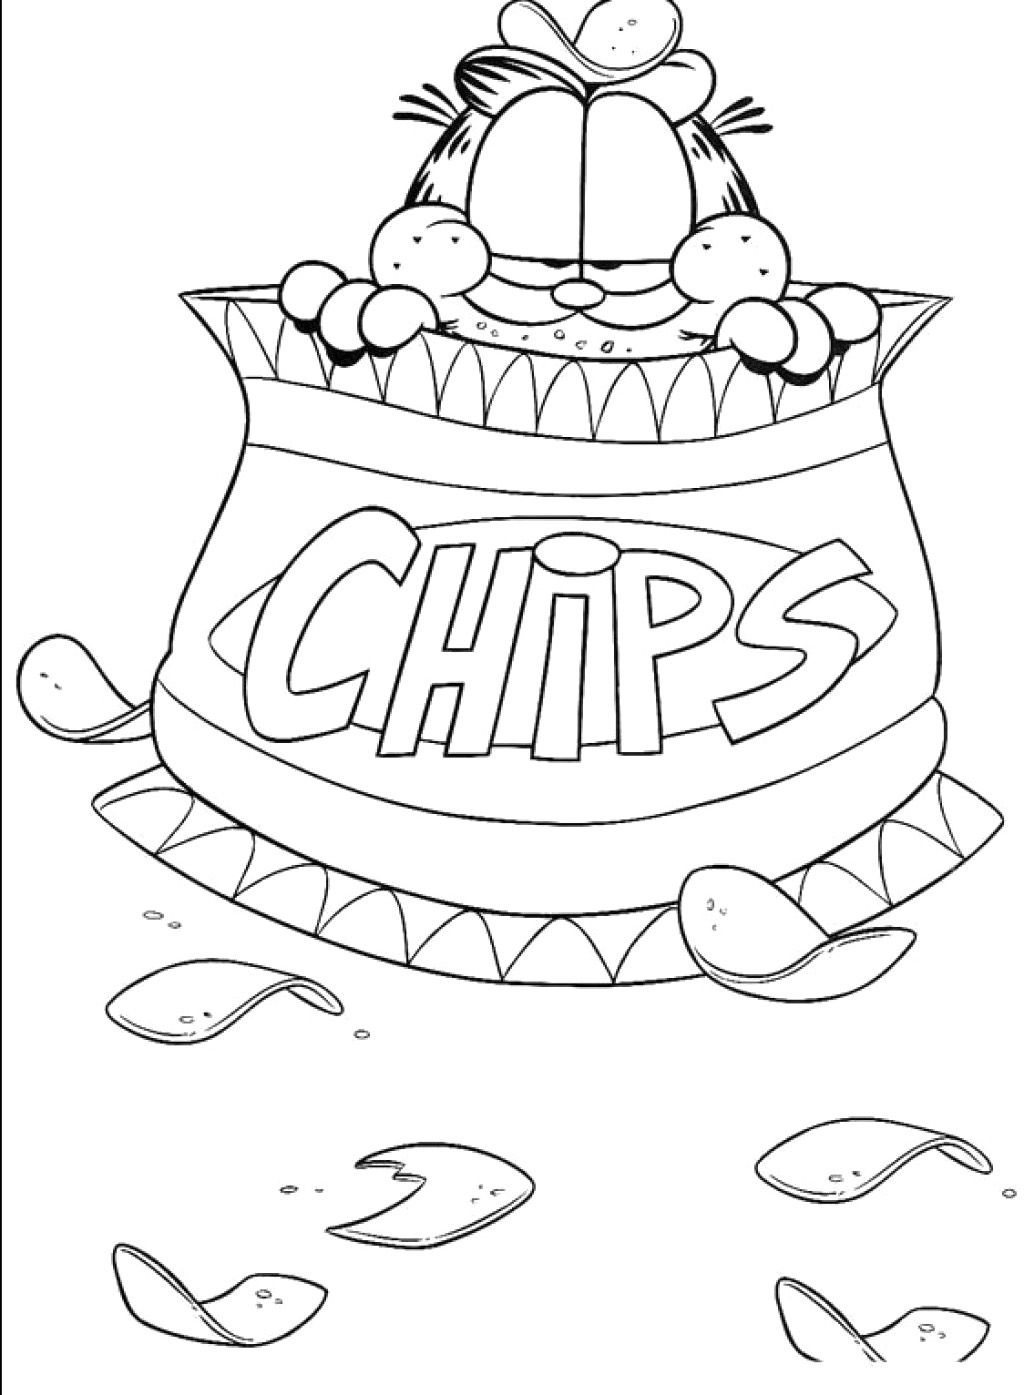 Garfield Chips Coloring Page | Coloring Pages | Pinterest